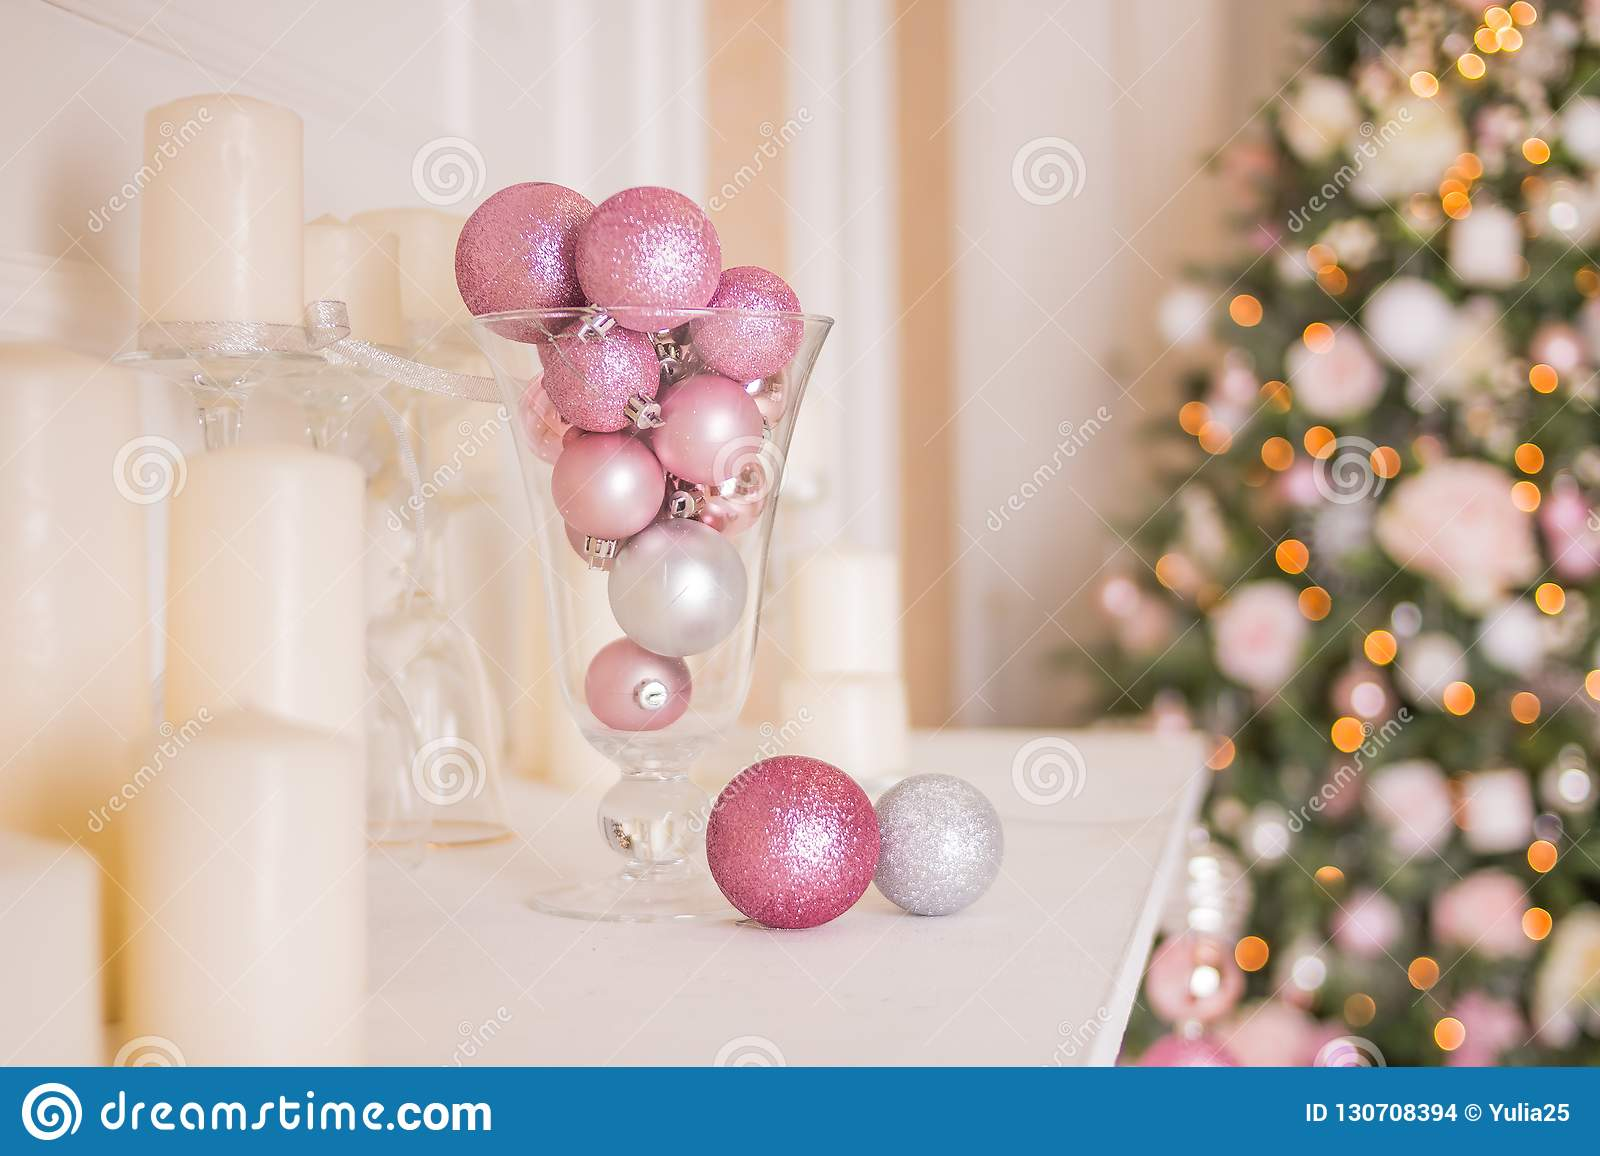 Photo Of Romantic Holiday Interior Design Traditional Christmas Tree White Candles Luxury Silver And Pink Balls As Stock Photo Image Of Advent Design 130708394